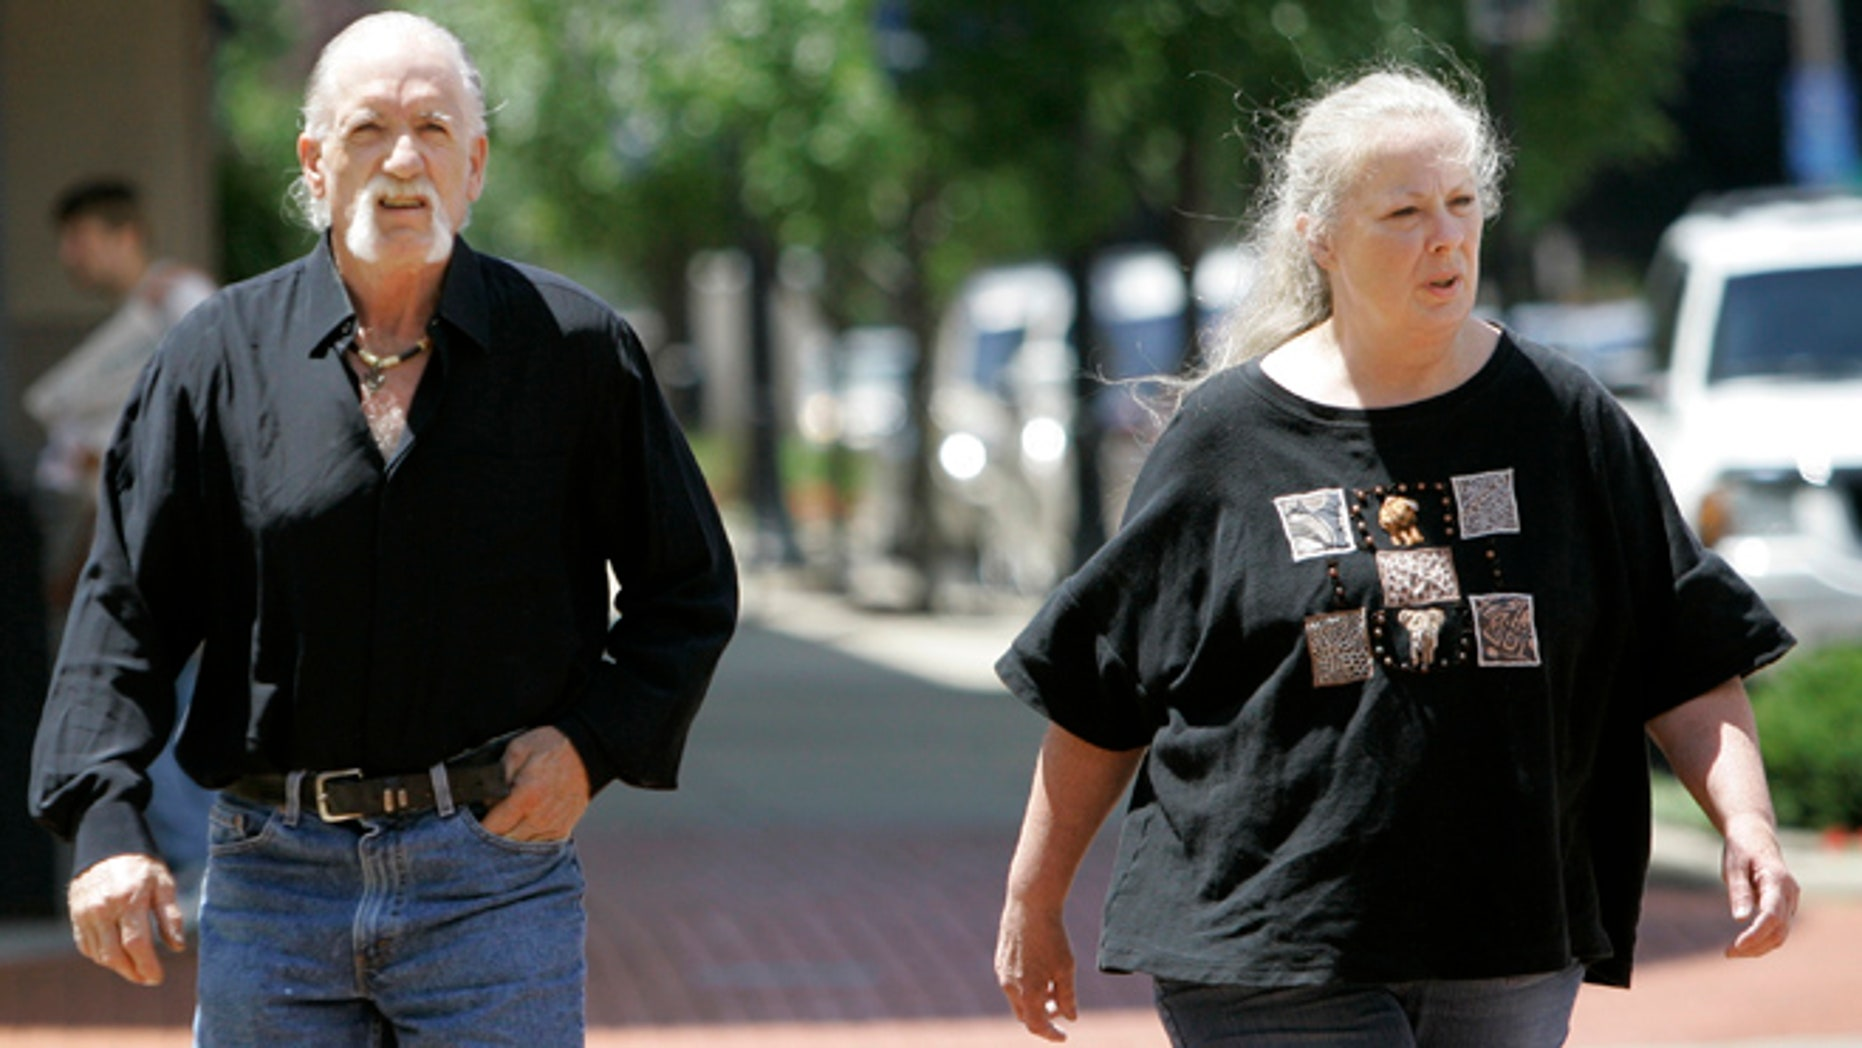 July 11, 2007: Michael and Sharen Gravelle walk through downtown Norwalk, Ohio.